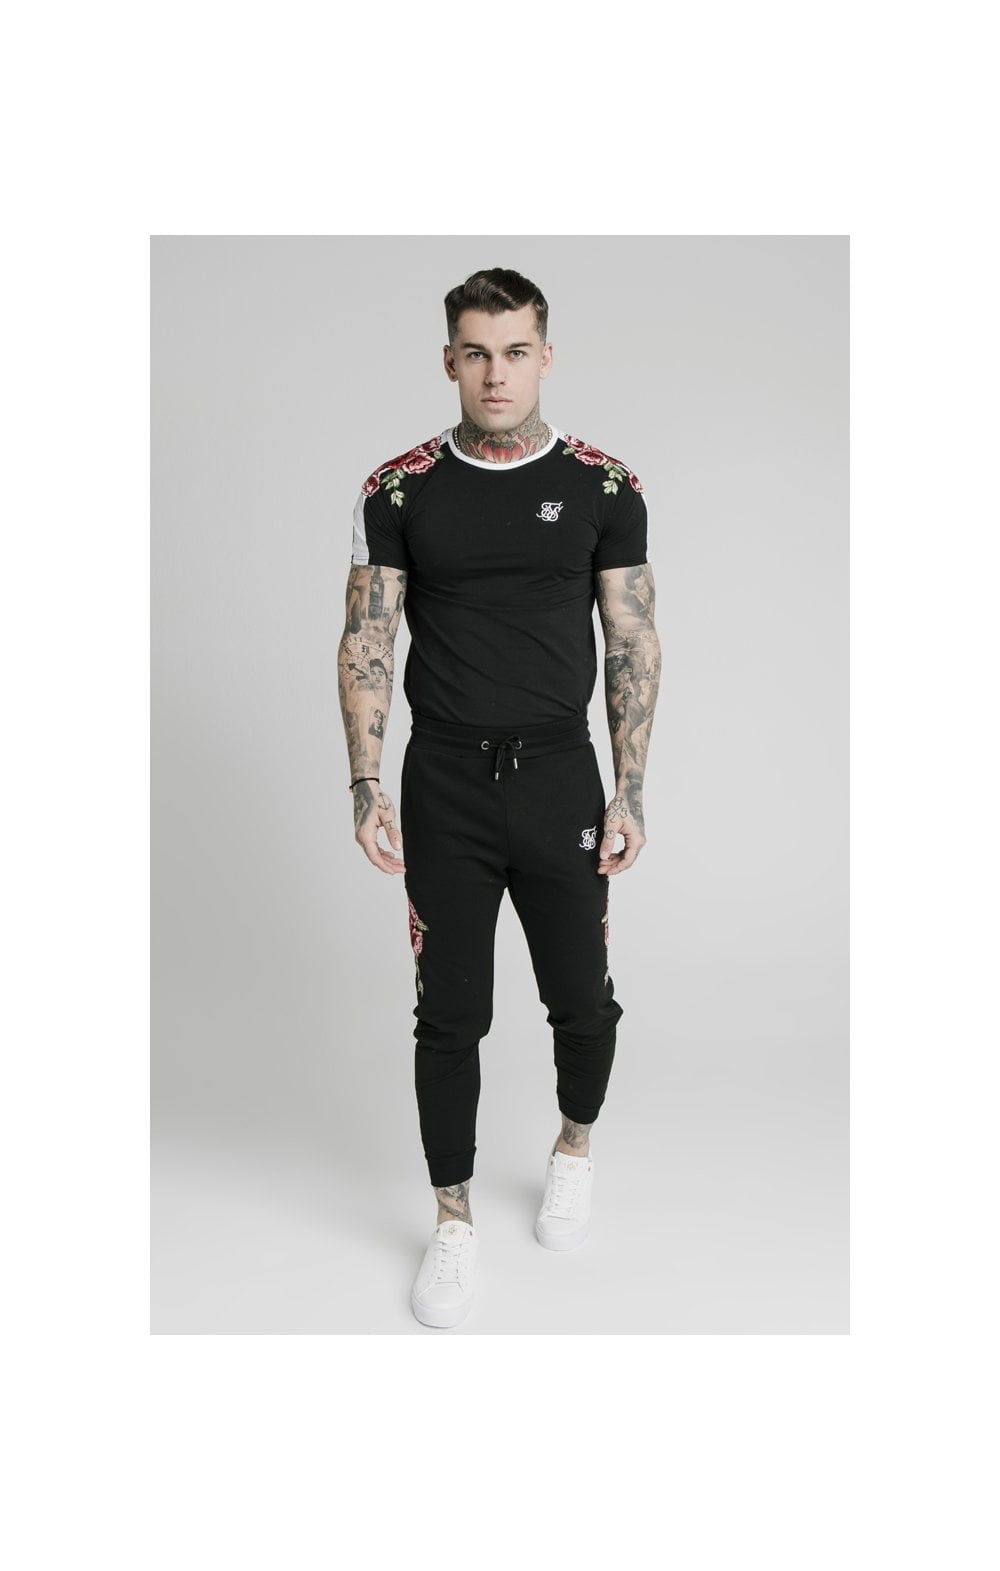 SikSilk Straight Hem Applique Gym Tee - Black MEN SIZES TOP: Extra Large